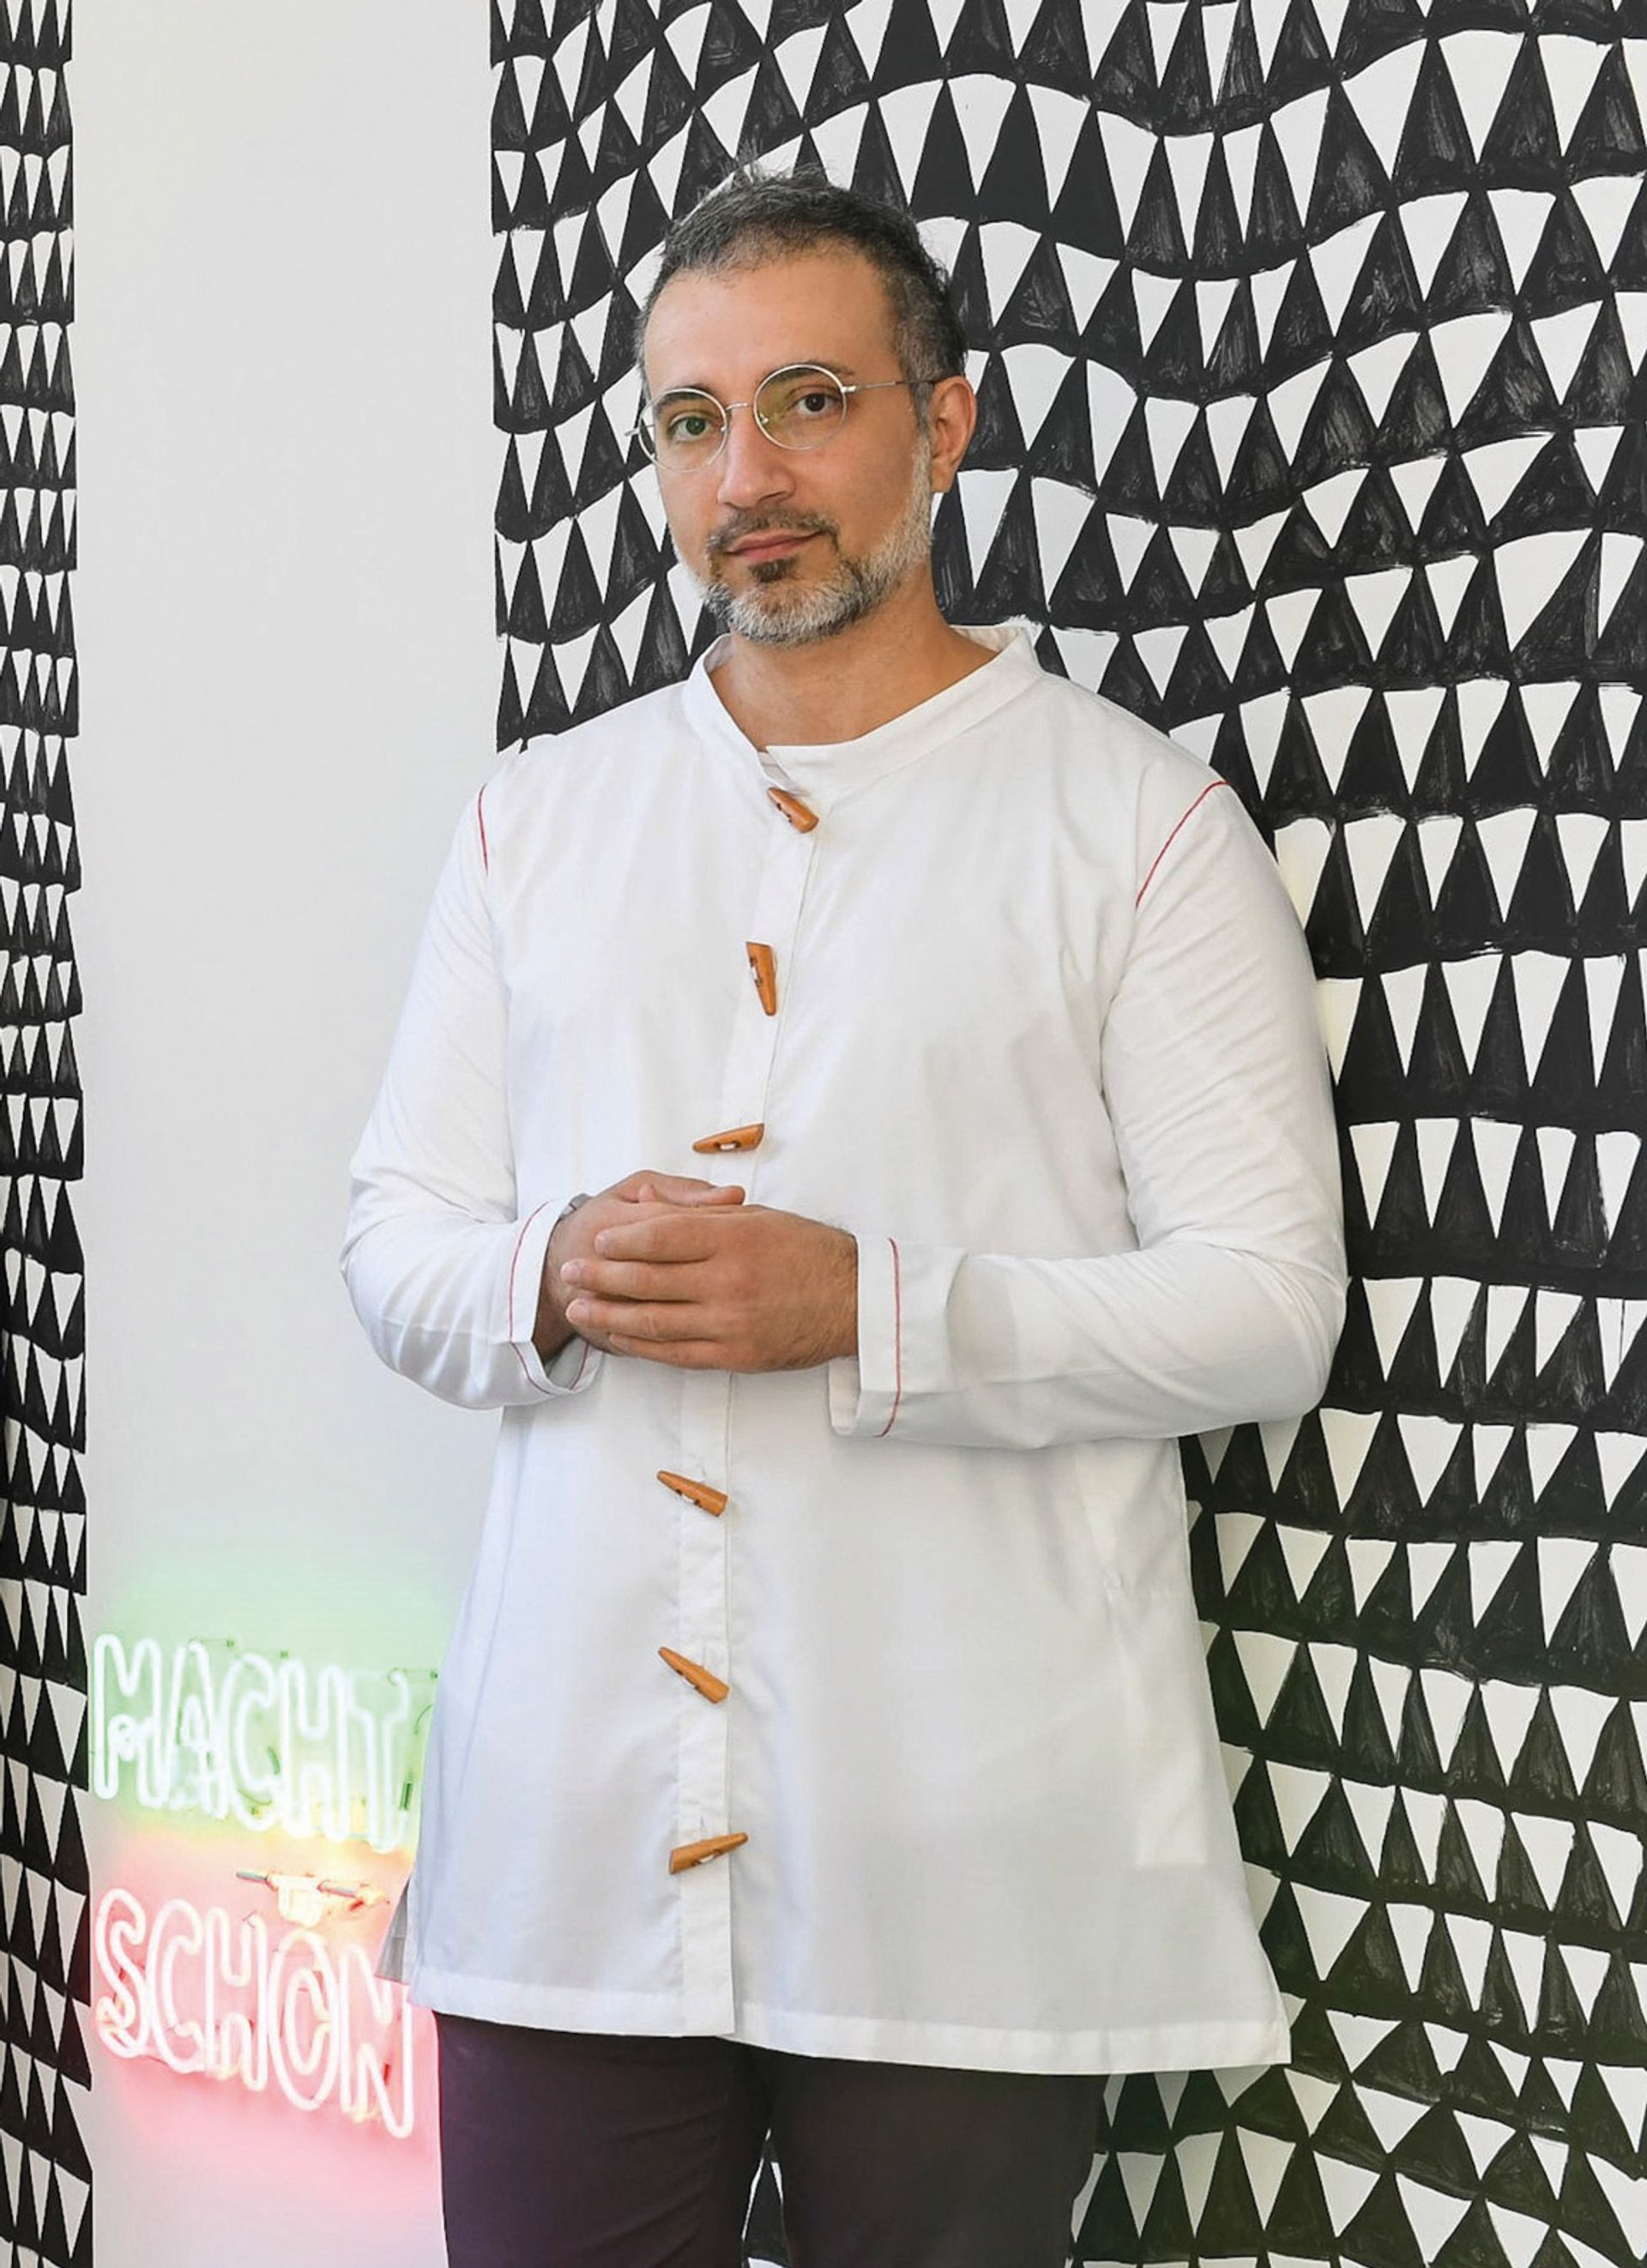 The artist Rokni Haerizadeh says the Tehran Museum of Contemporary Art  bought his painting after it was shown in Tehran in 2003. © Miquel Coll